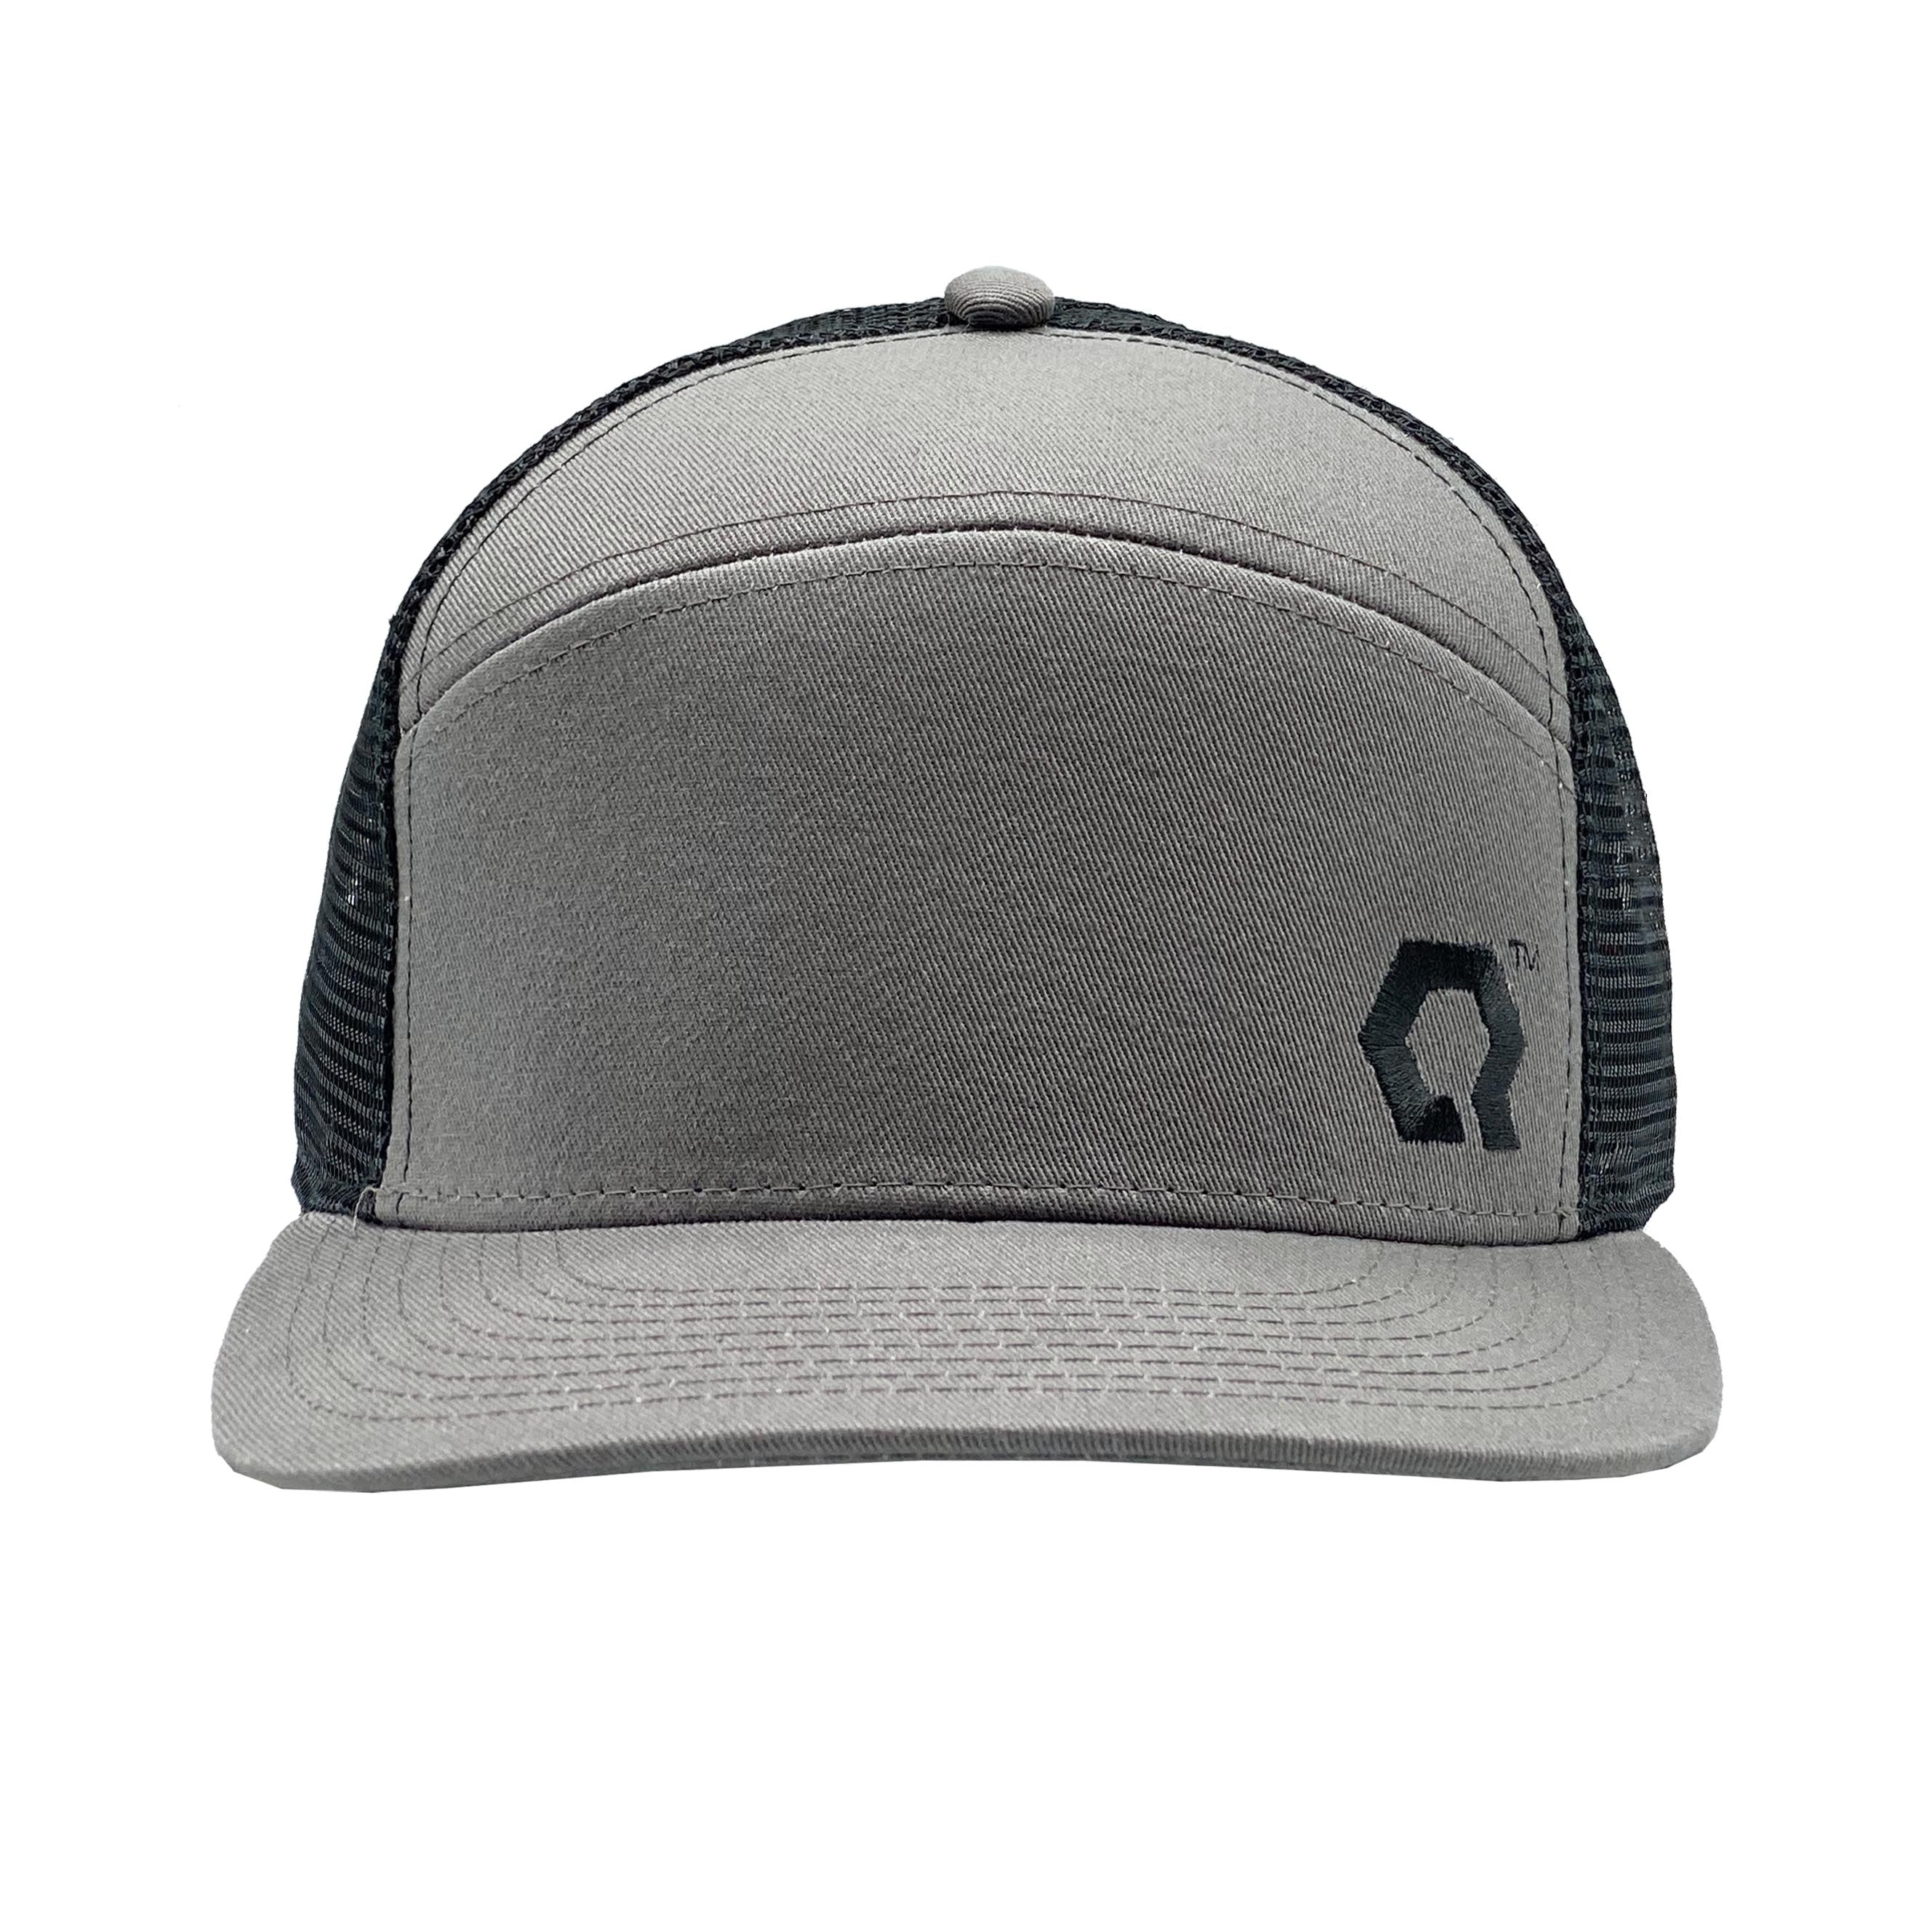 Tradesman 6P Hat : COAL - QLTY Objective